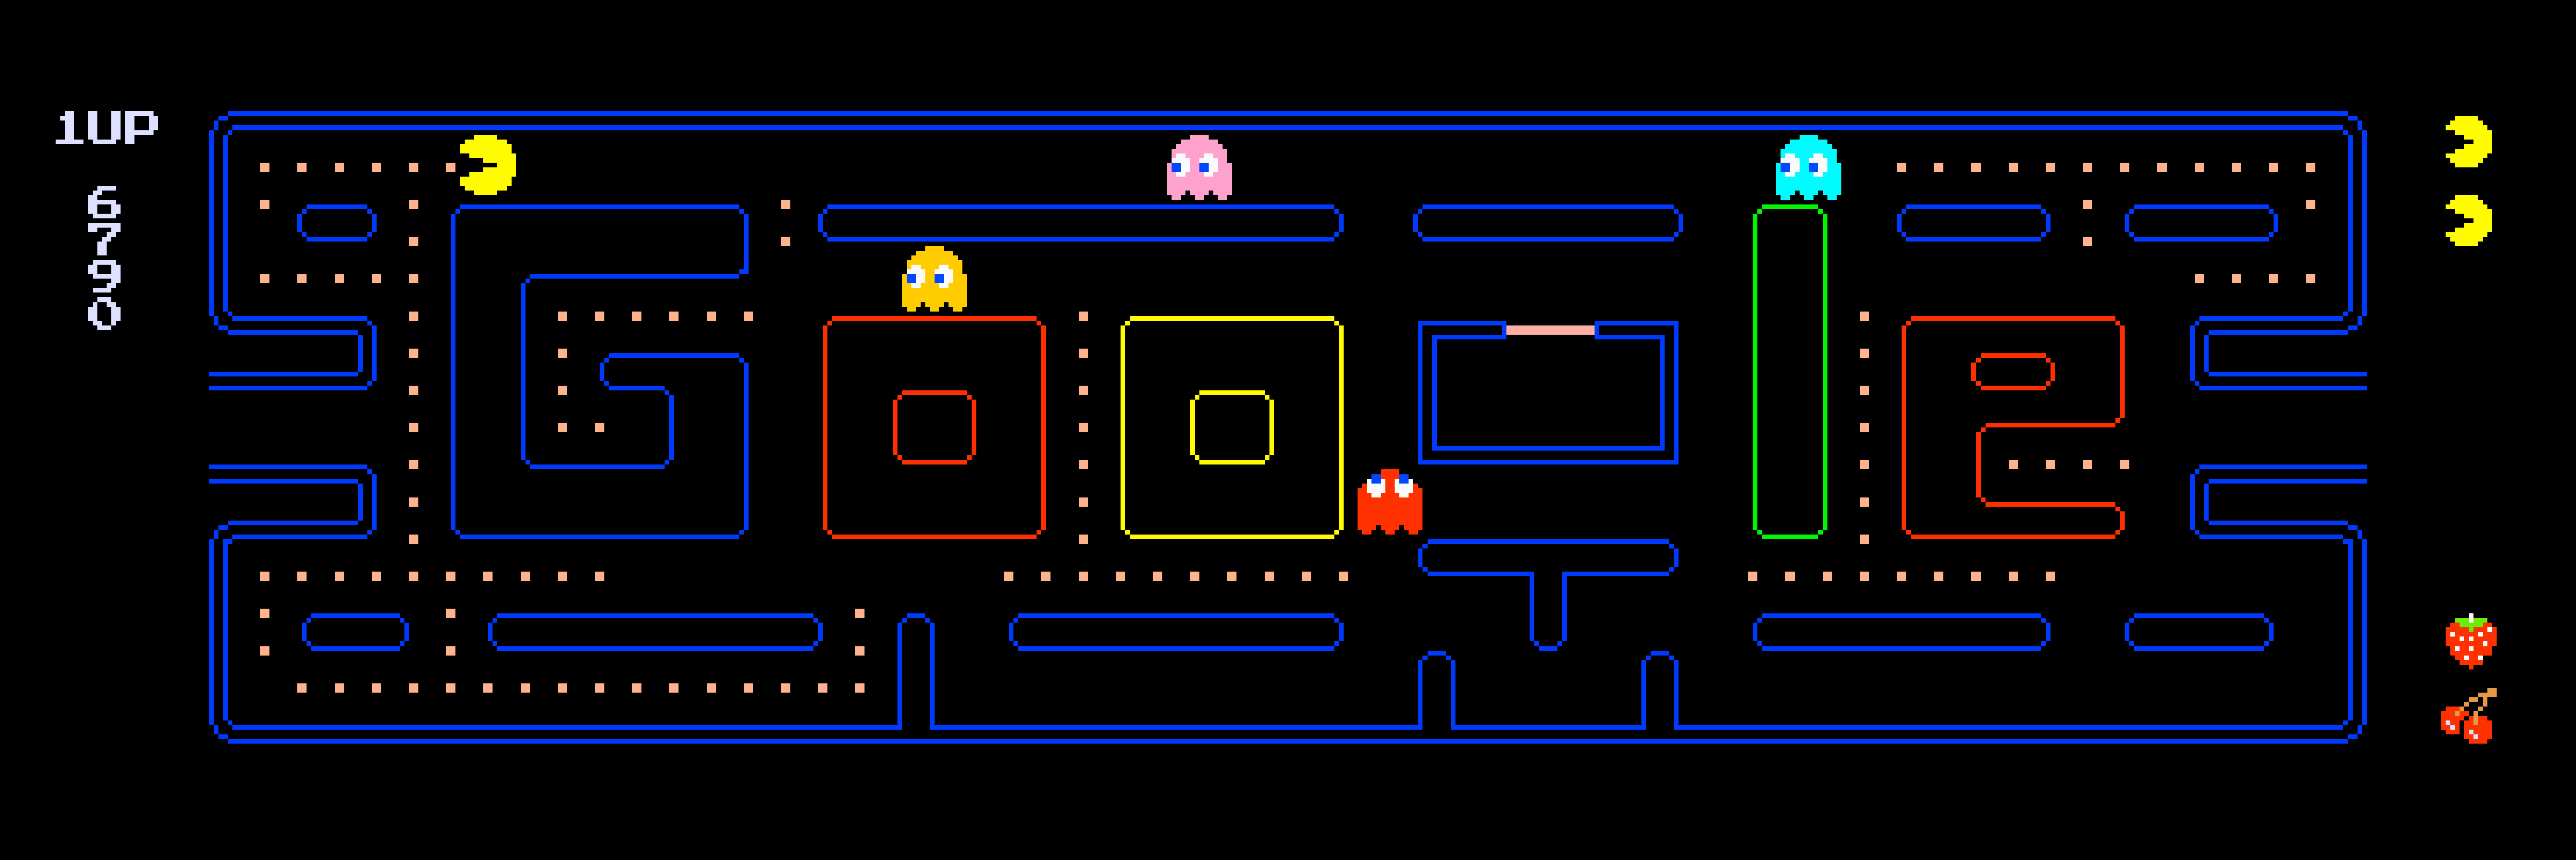 Interactive Google Doodle Celebrates Pac-Man's 30th | WIRED